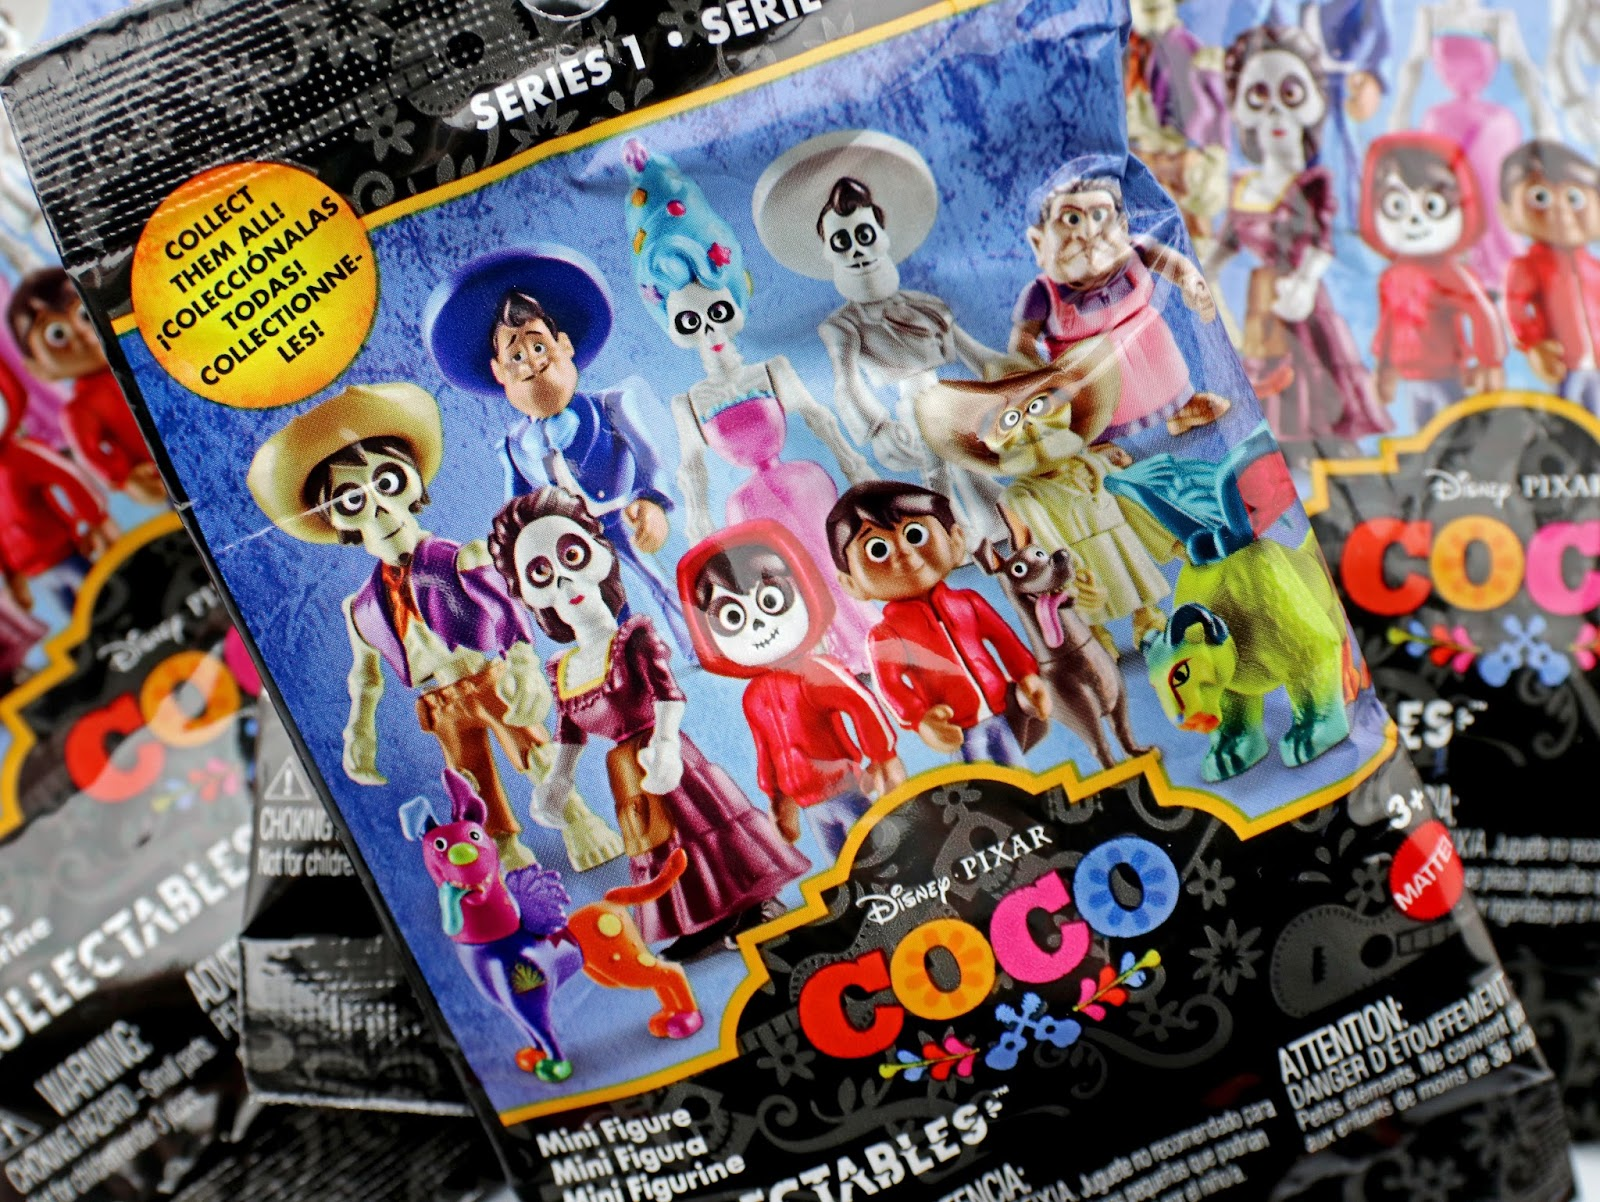 pixar coco skullectables blind bags codes